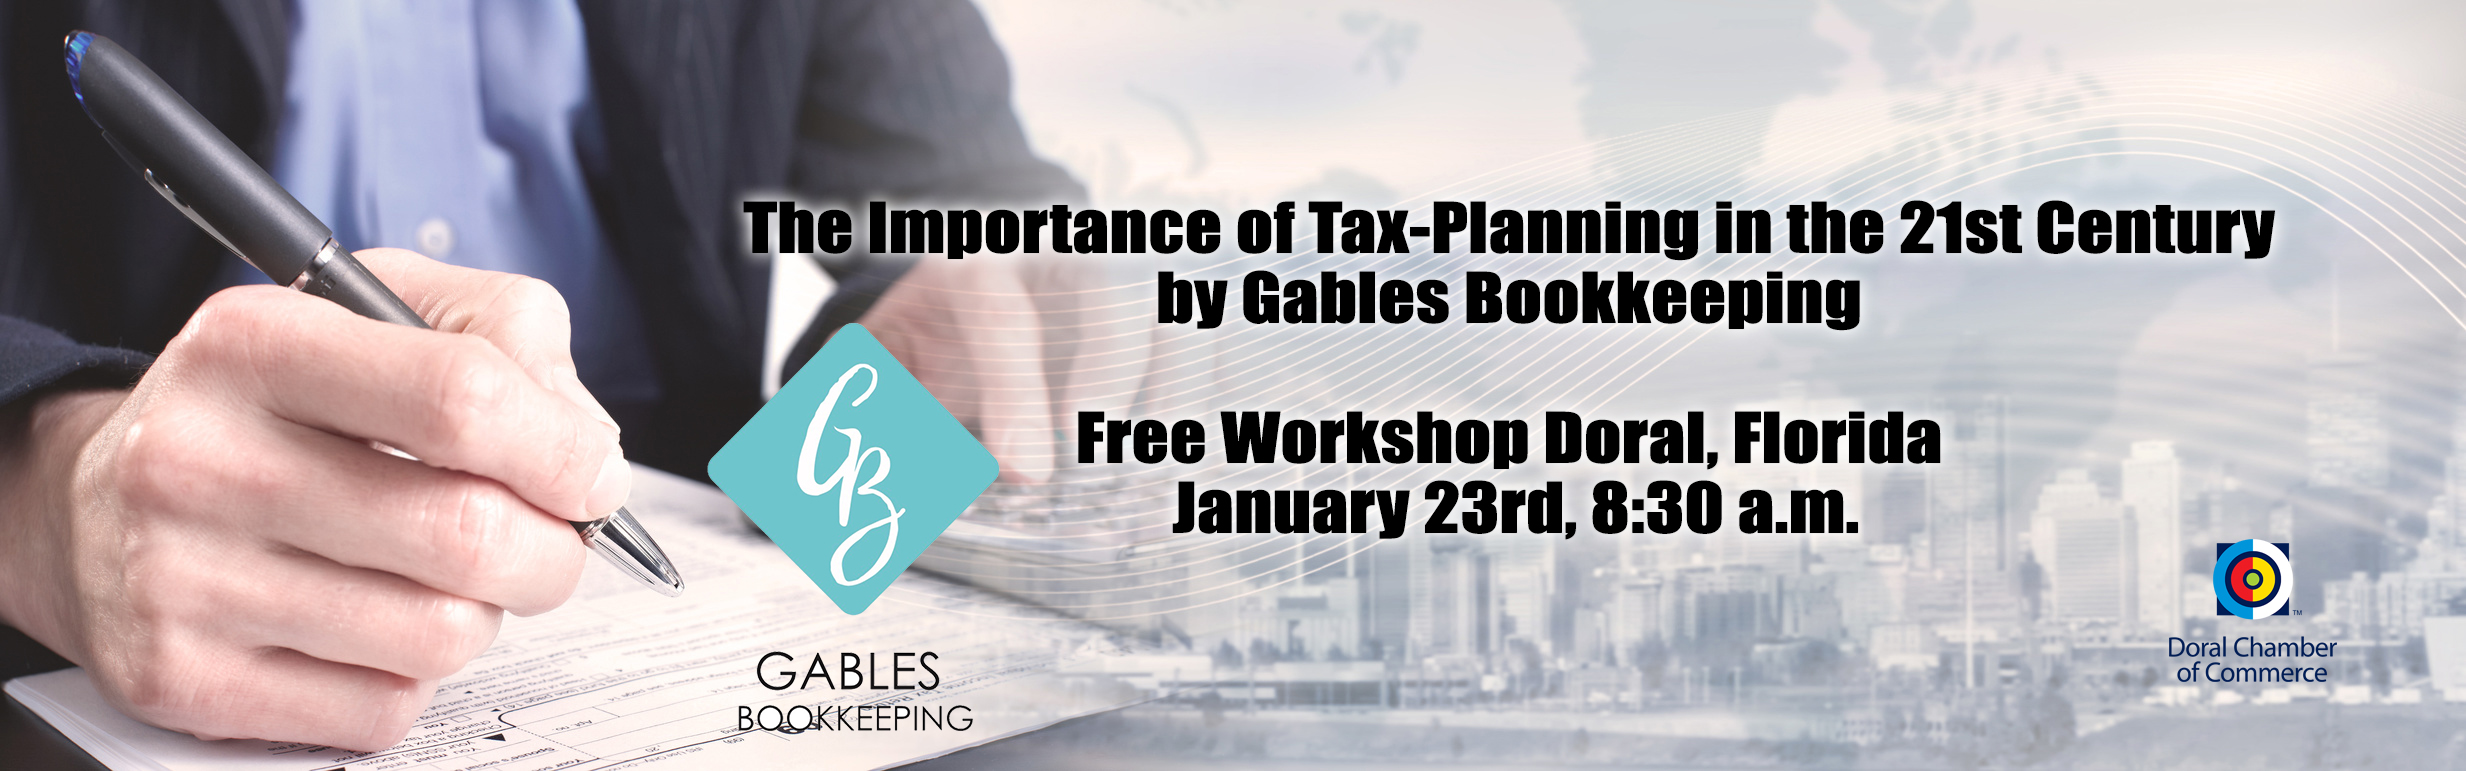 """The Importance of Tax-Planning  in the 21st Century"" by Gables Bookkeeping, Miami-Dade, Florida, United States"